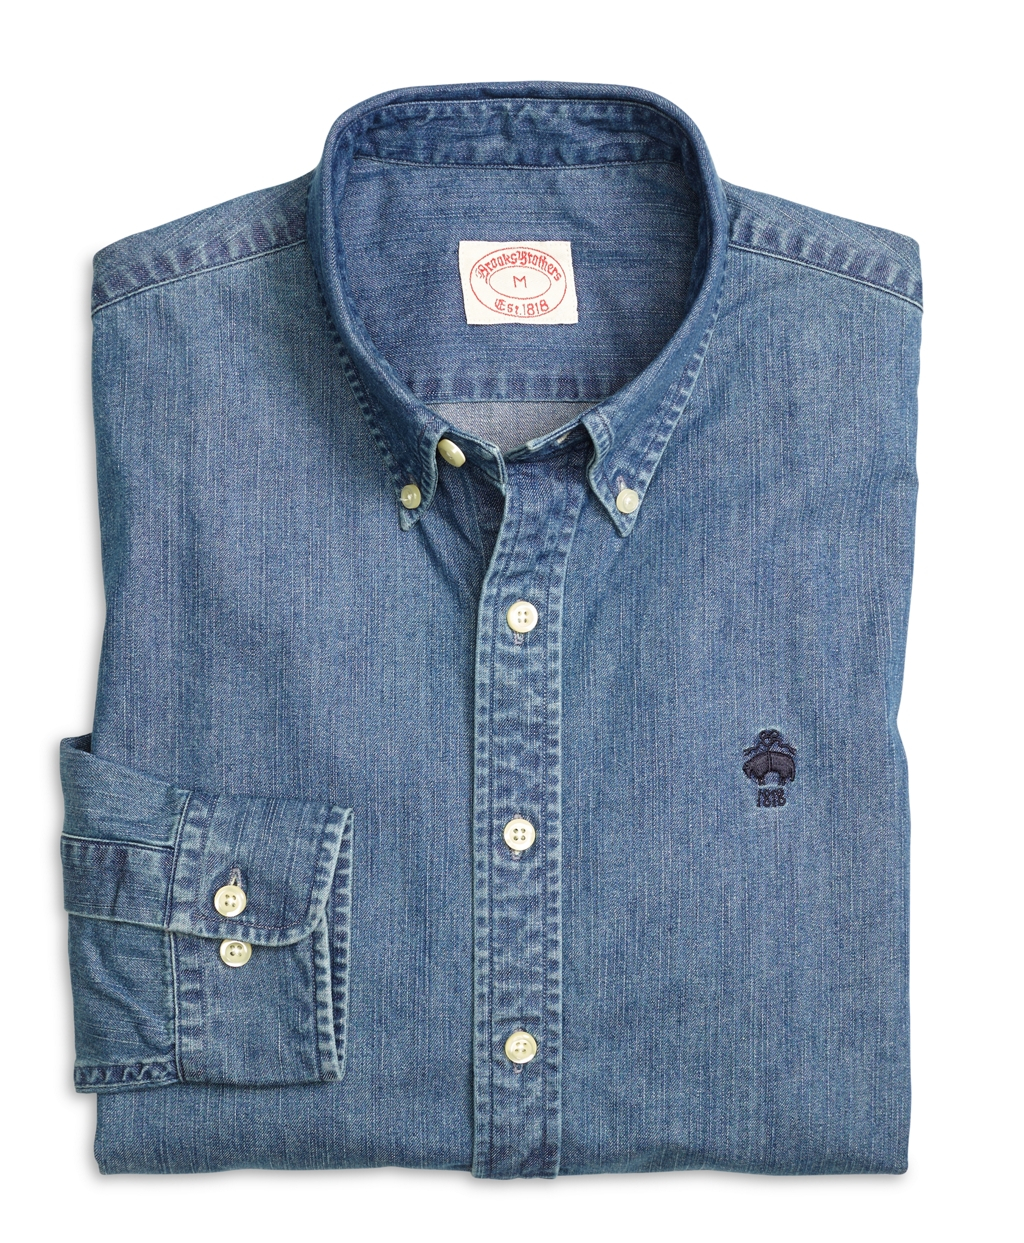 Brooks brothers denim sport shirt in blue for men lyst for Brooks brothers sports shirts